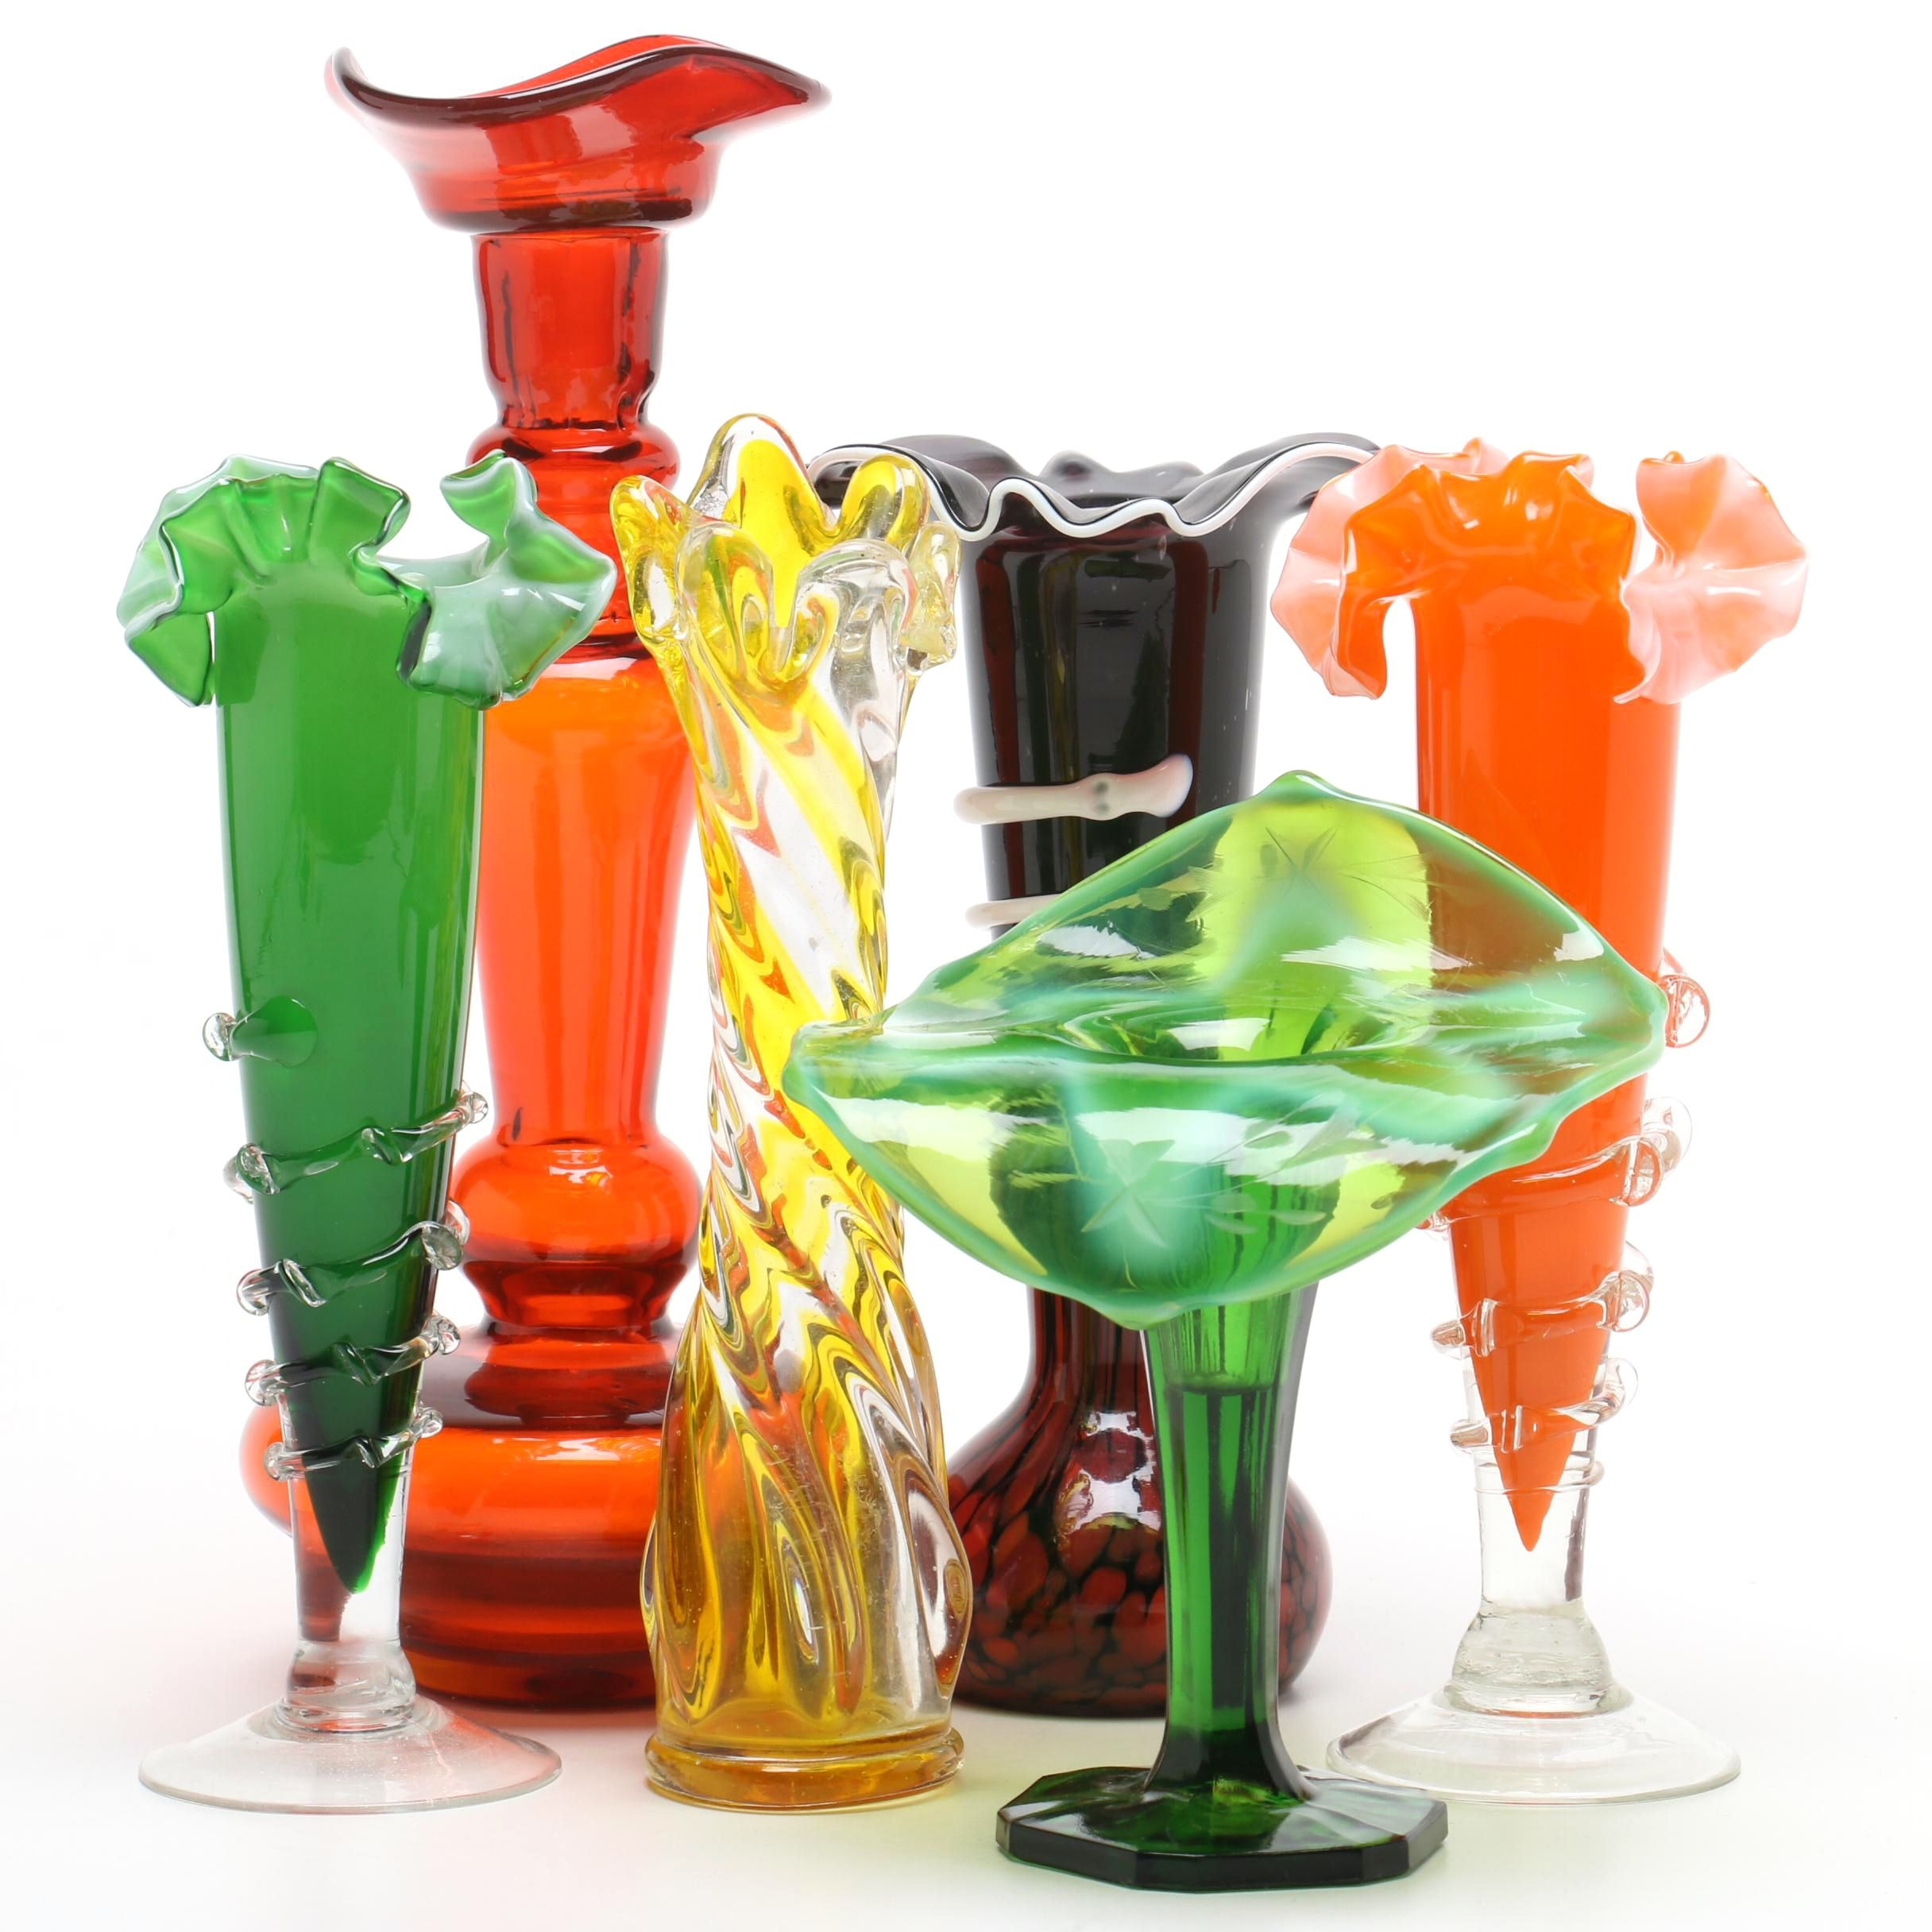 Blown Glass Vases with Ruffled and Scalloped Rims